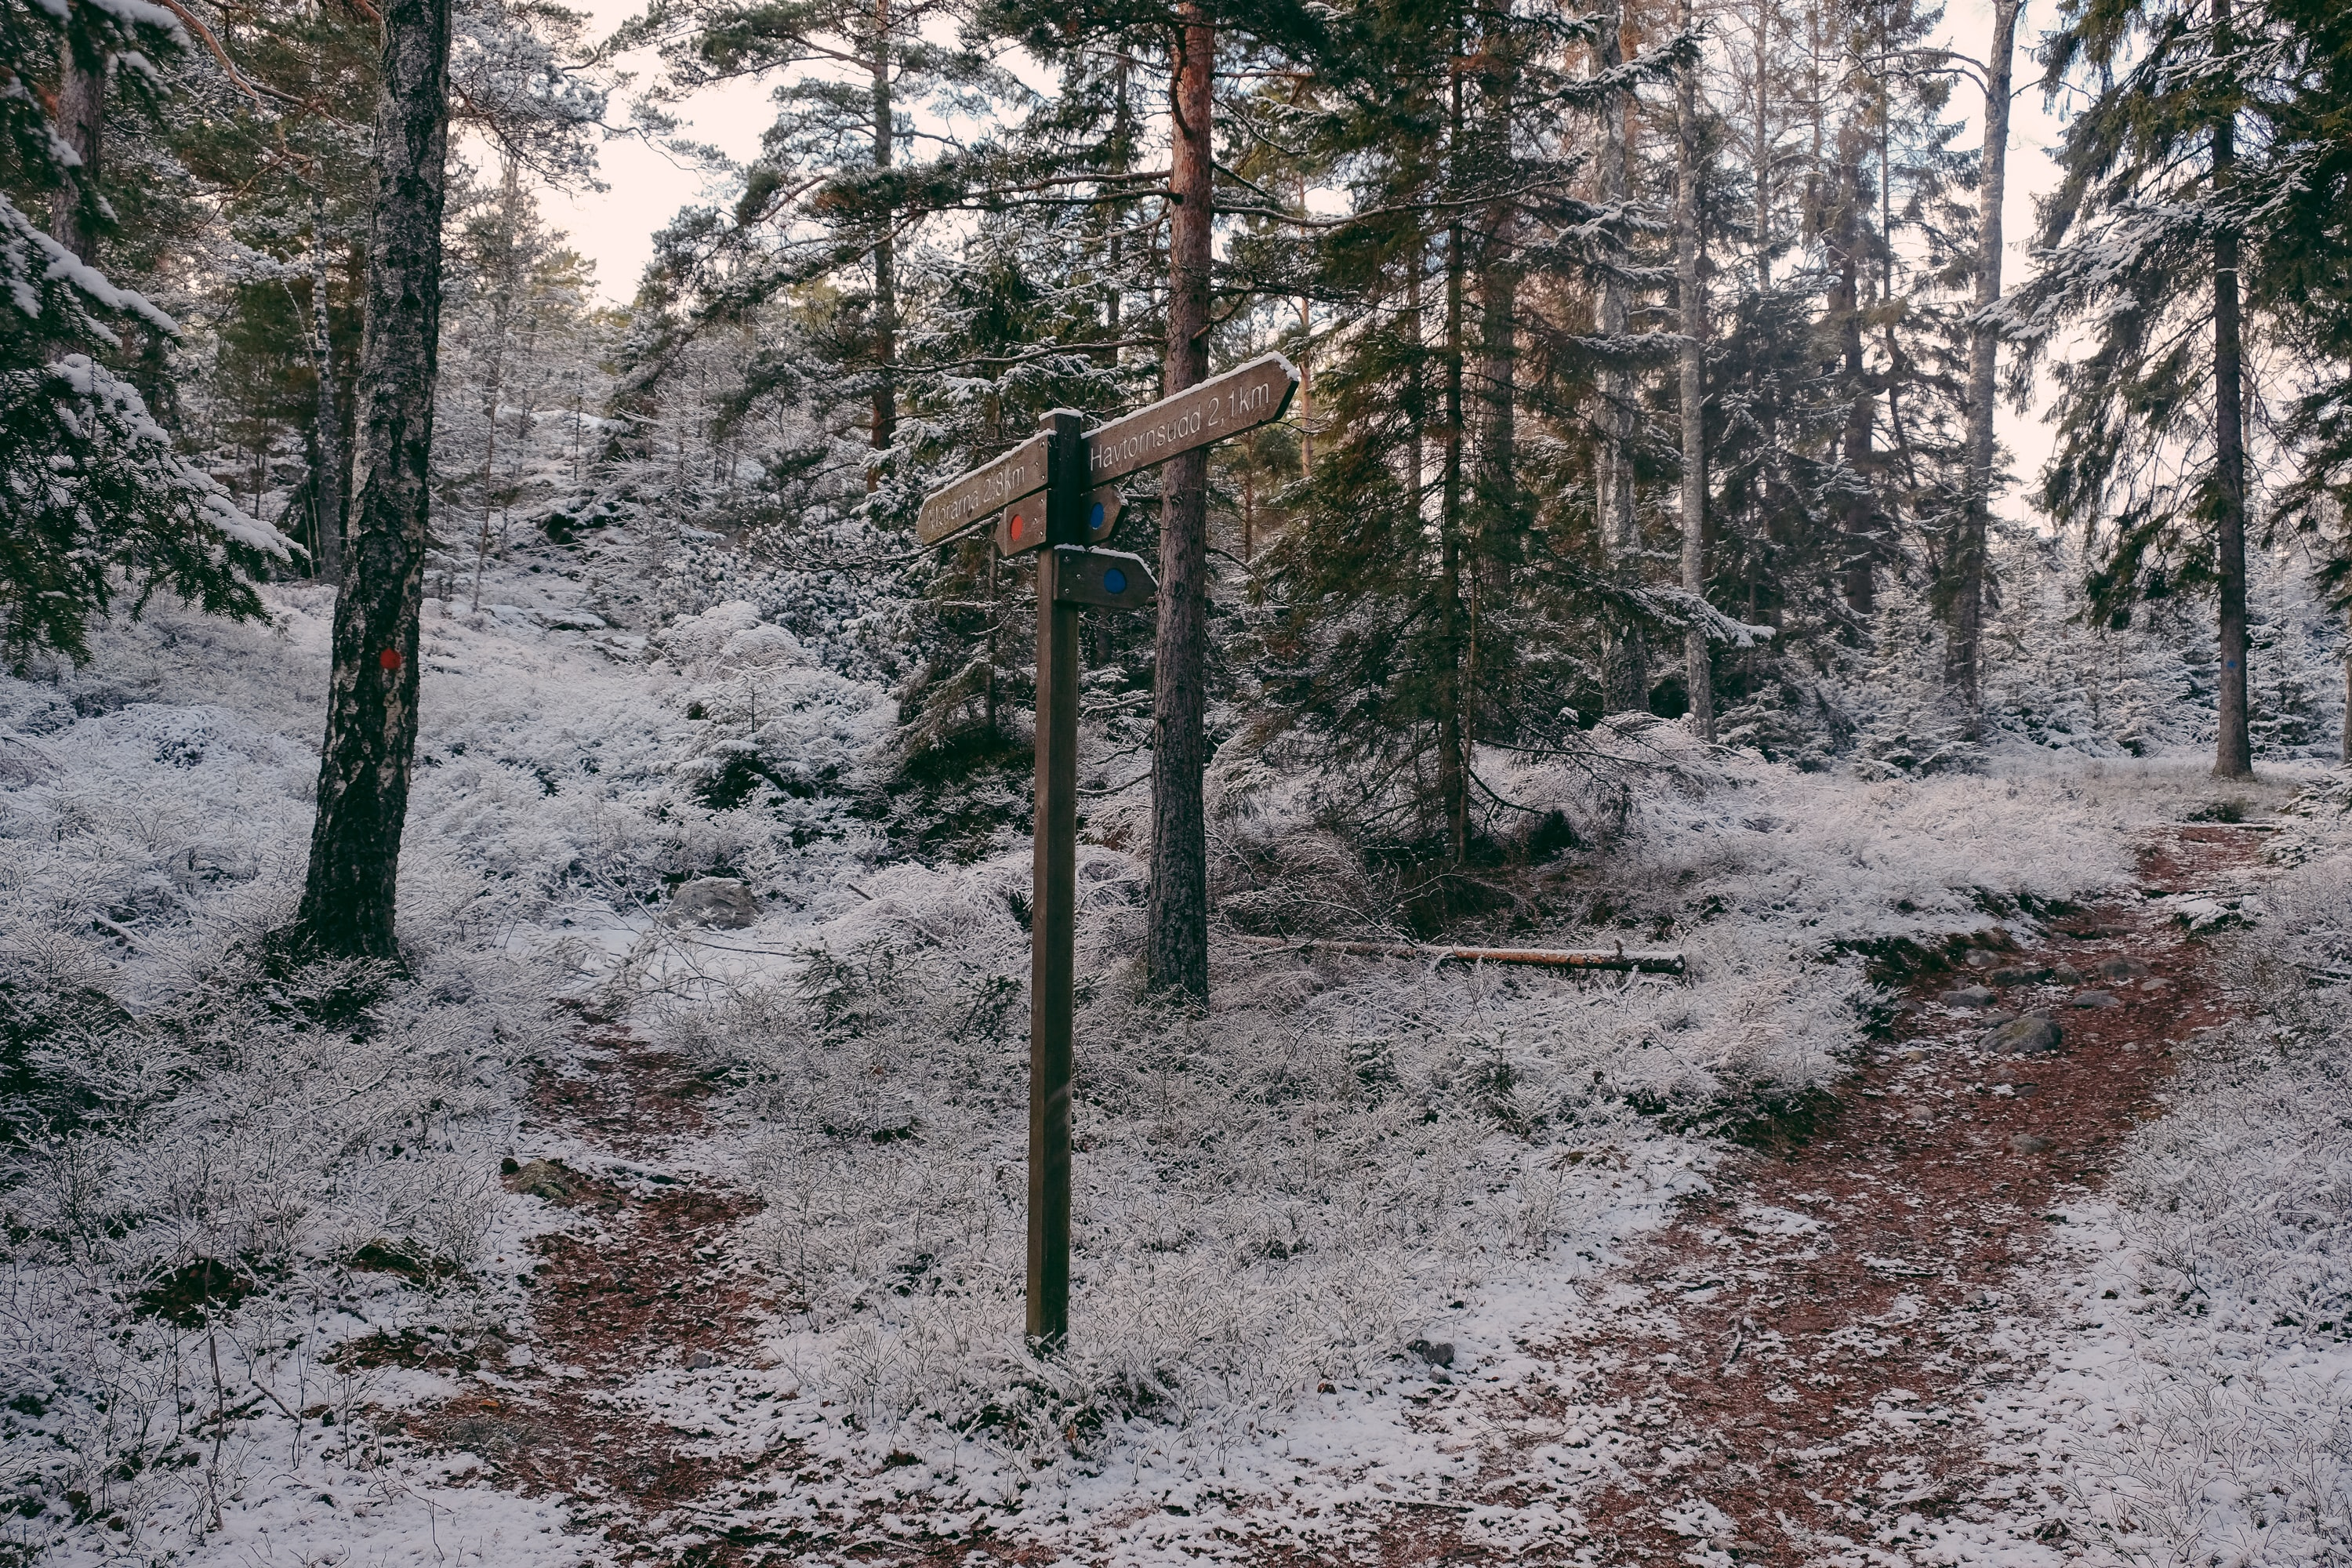 landscape of treest covered with snow